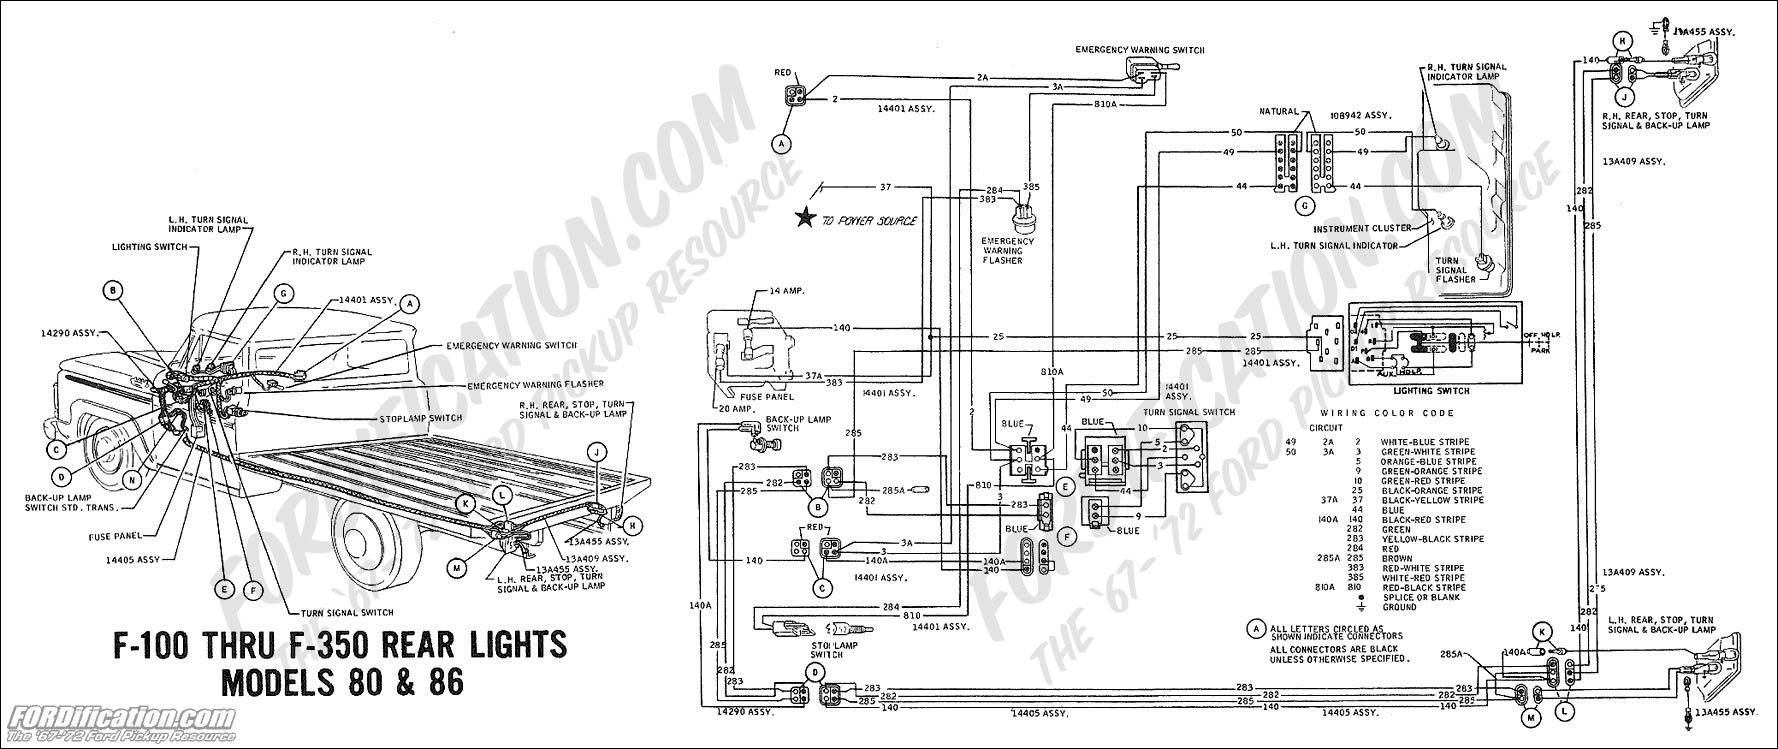 wiring_69rearlights mdls80 86 wiring diagrams for 1995 ford f 350 pickup wiper motor fixya trailer wiring diagram 2001 f150 at honlapkeszites.co